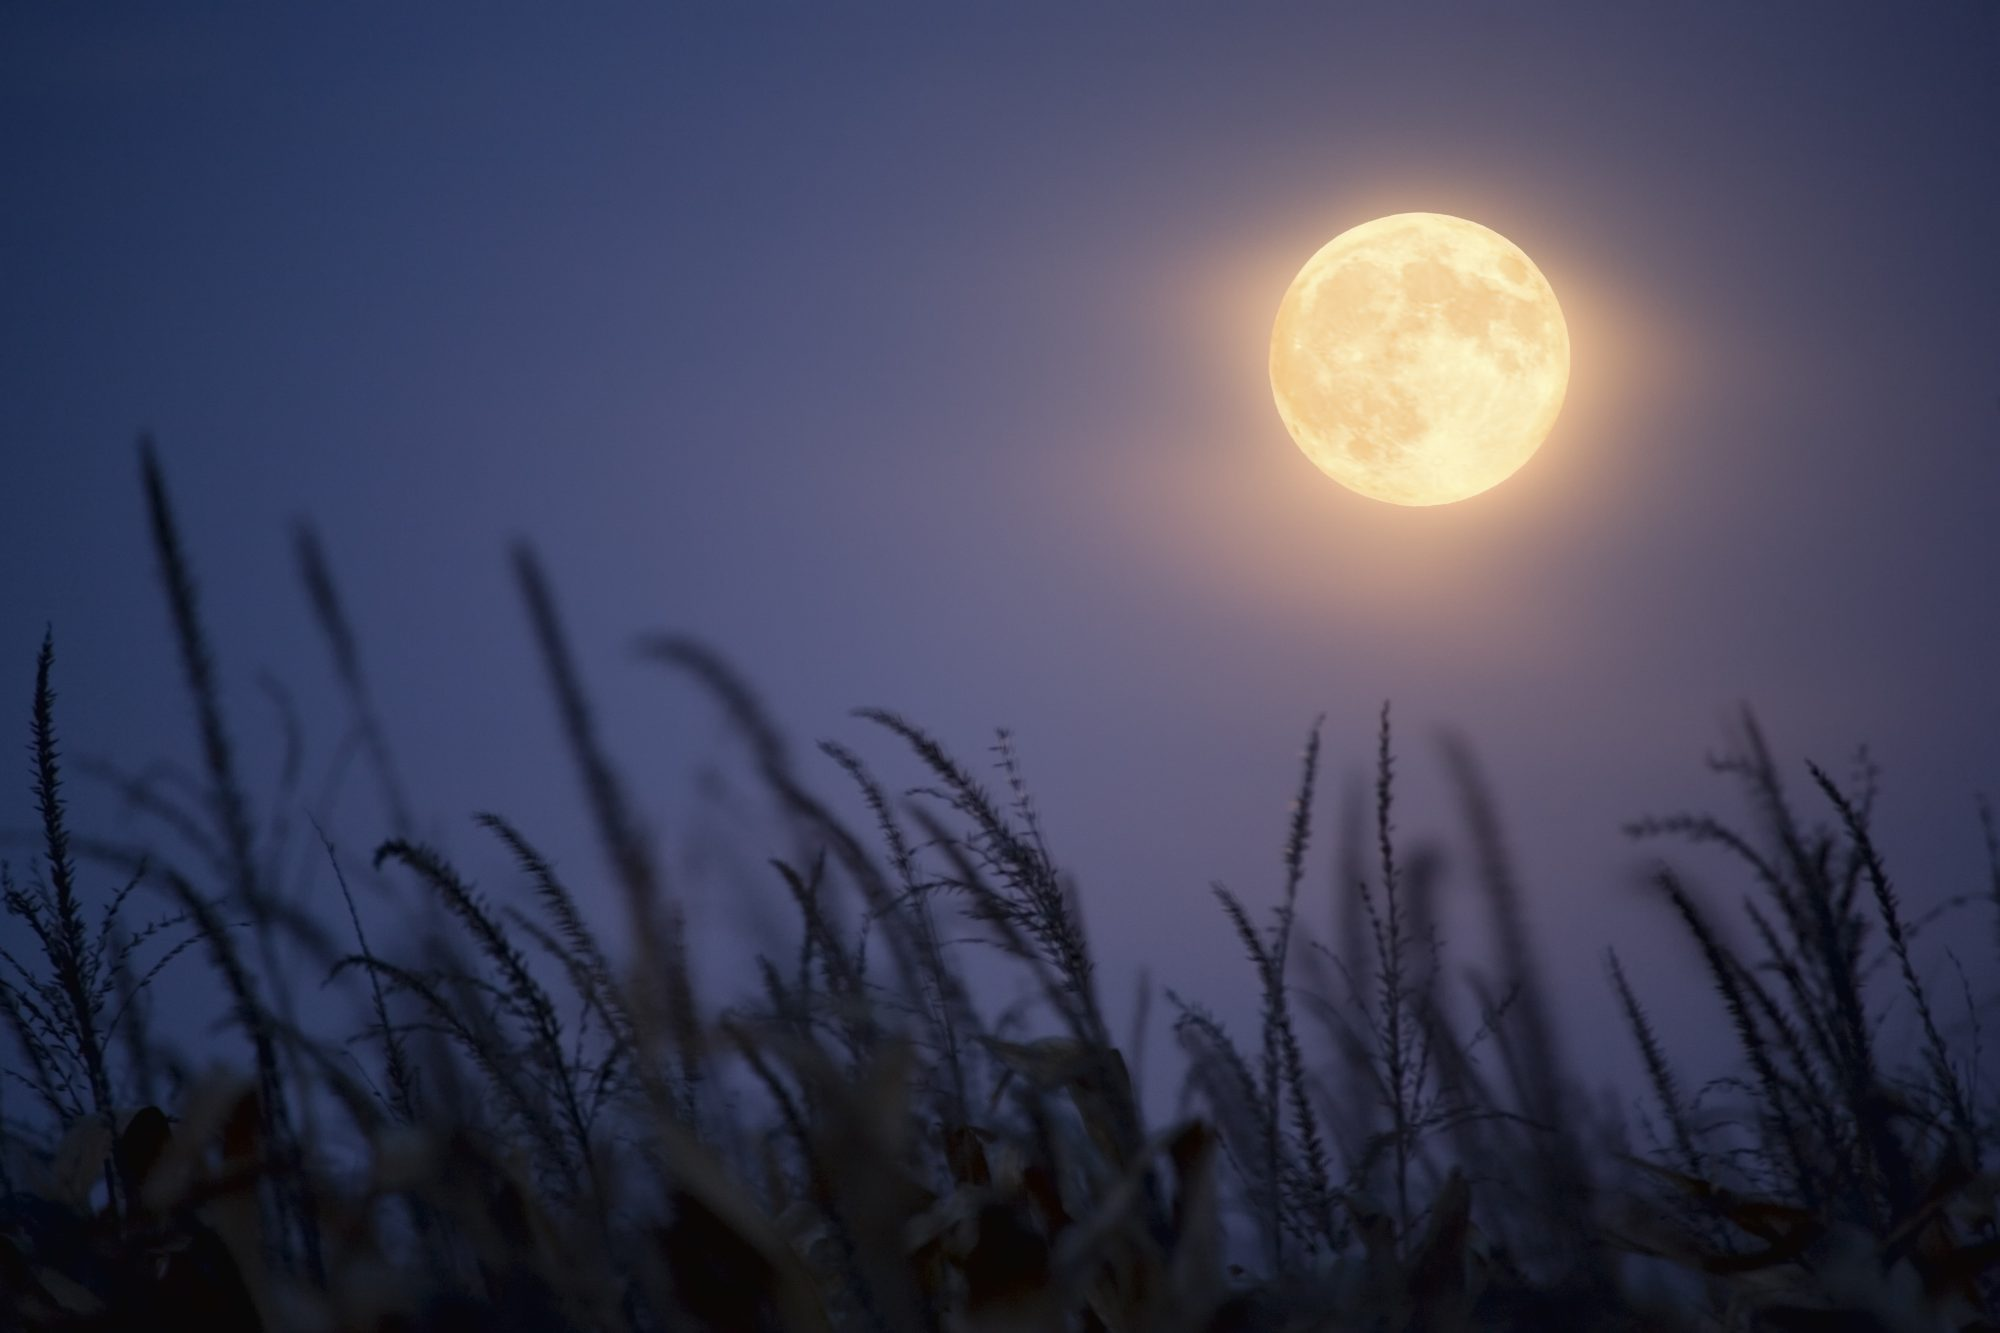 A rare full Harvest Moon expected for this coming Friday the 13th